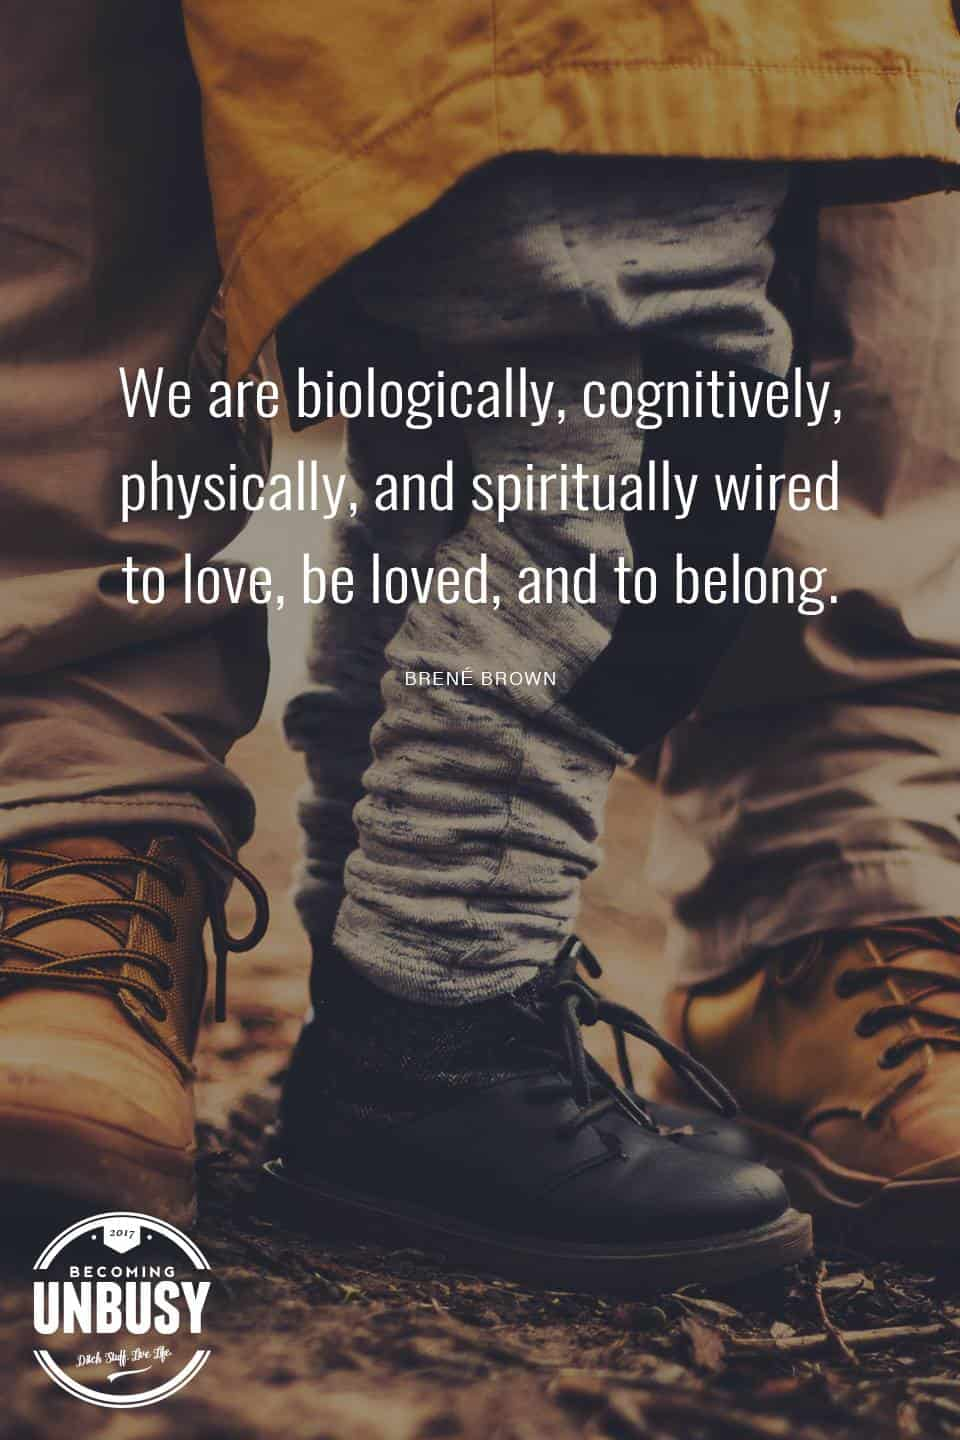 We are biologically, cognitively, physically, and spiritually wired to love, be loved, and to belong. - Brene Brown #quote #becomingunbusy *love this video and site